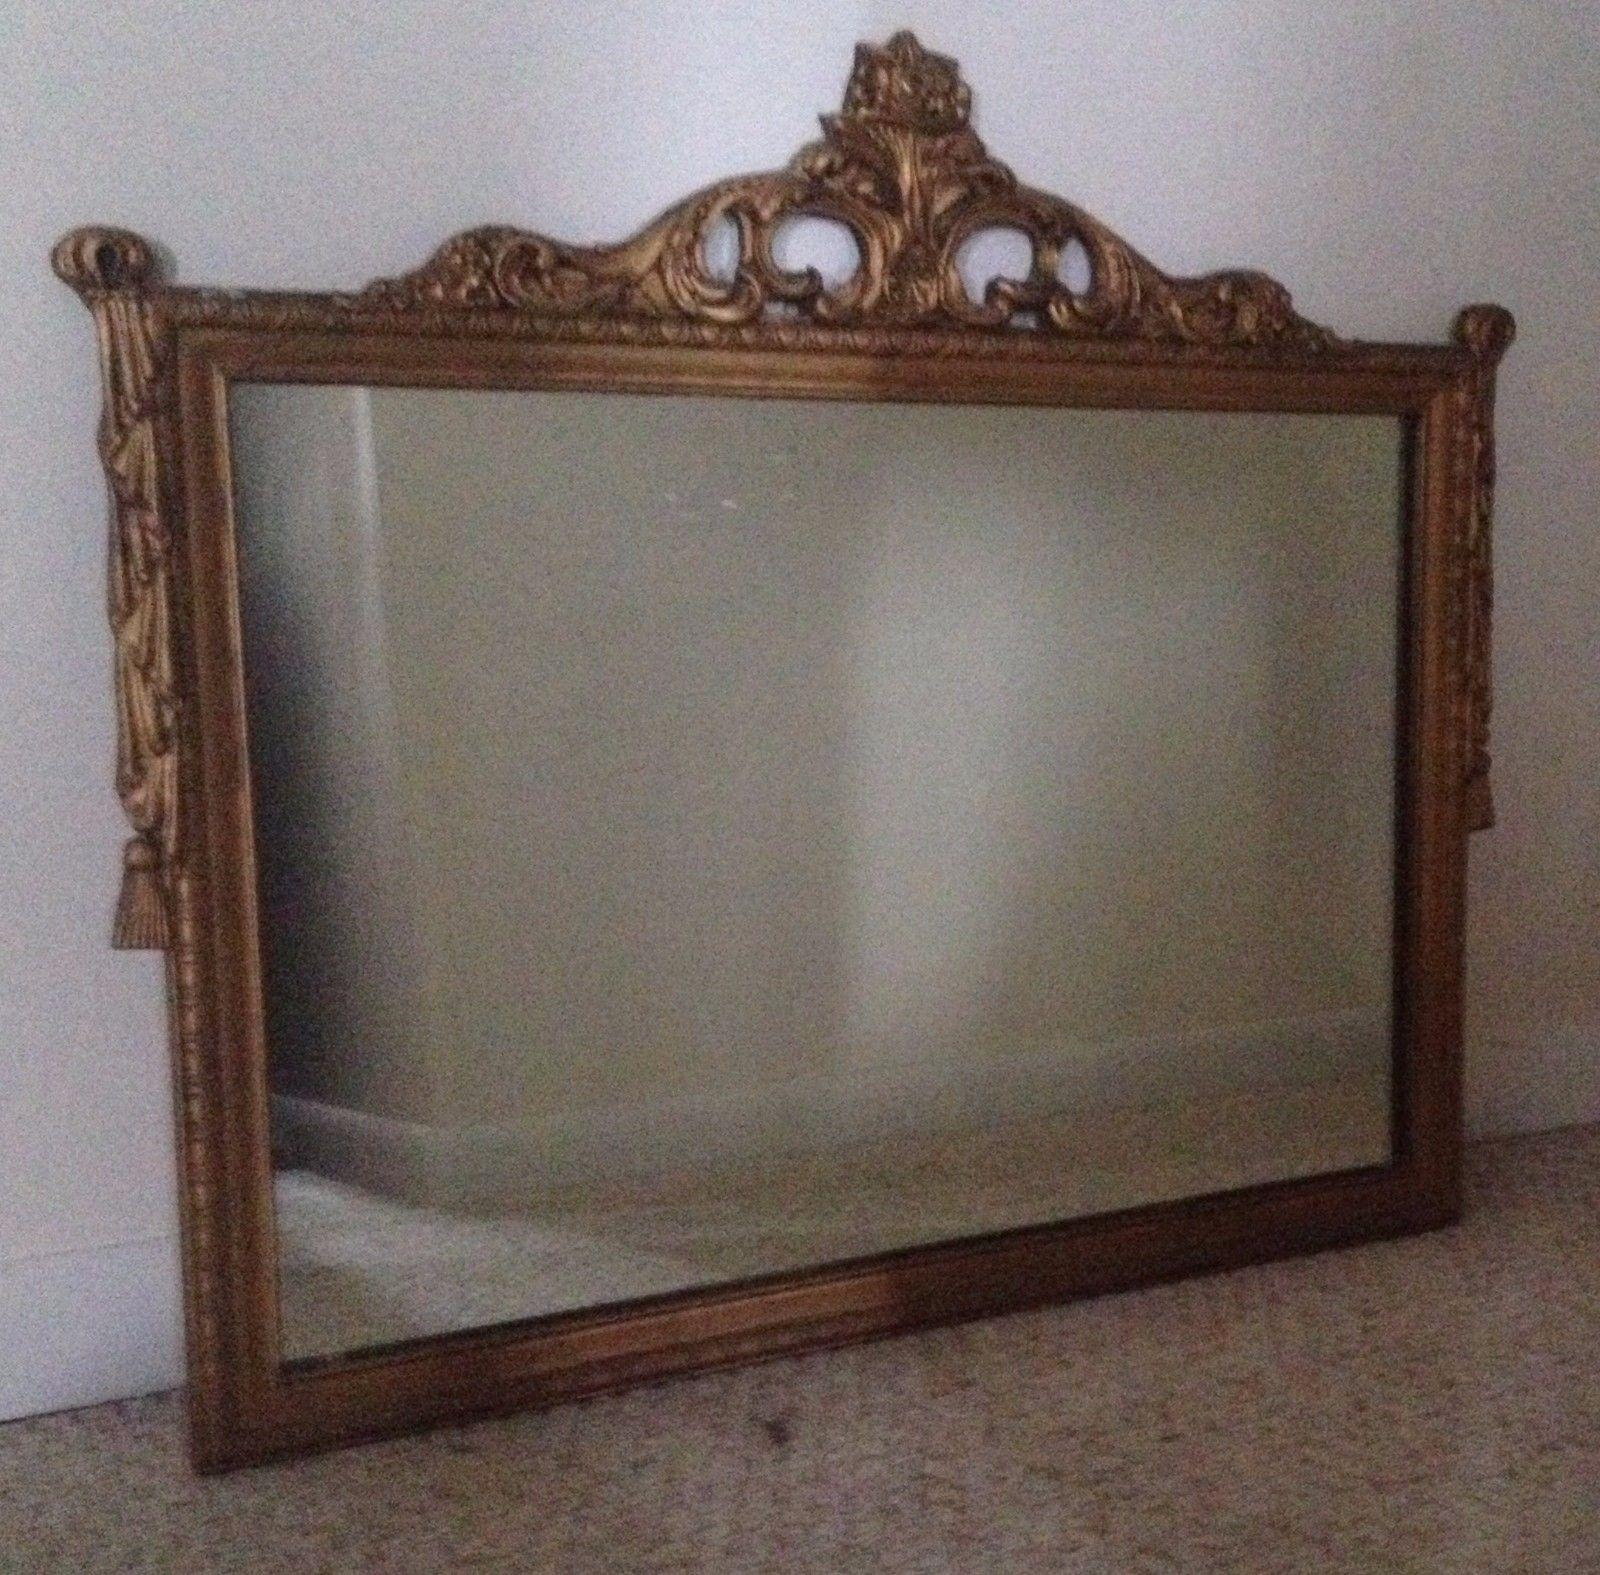 Antique Decorative Carved Wood Gold Gilt Mirror | What's It Worth With Regard To Gold Gilt Mirror (Image 1 of 20)